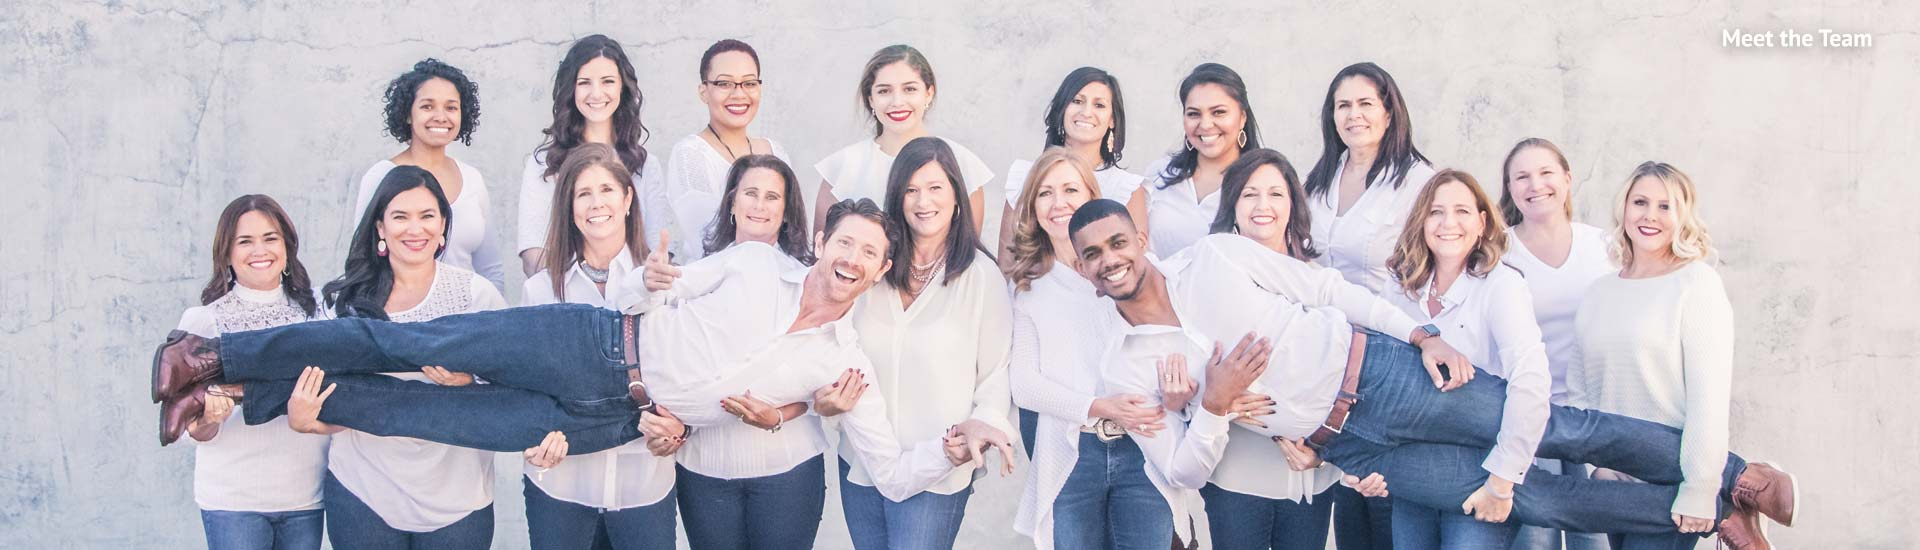 Meet the team Stone Oak Orthodontics San Antonio TX